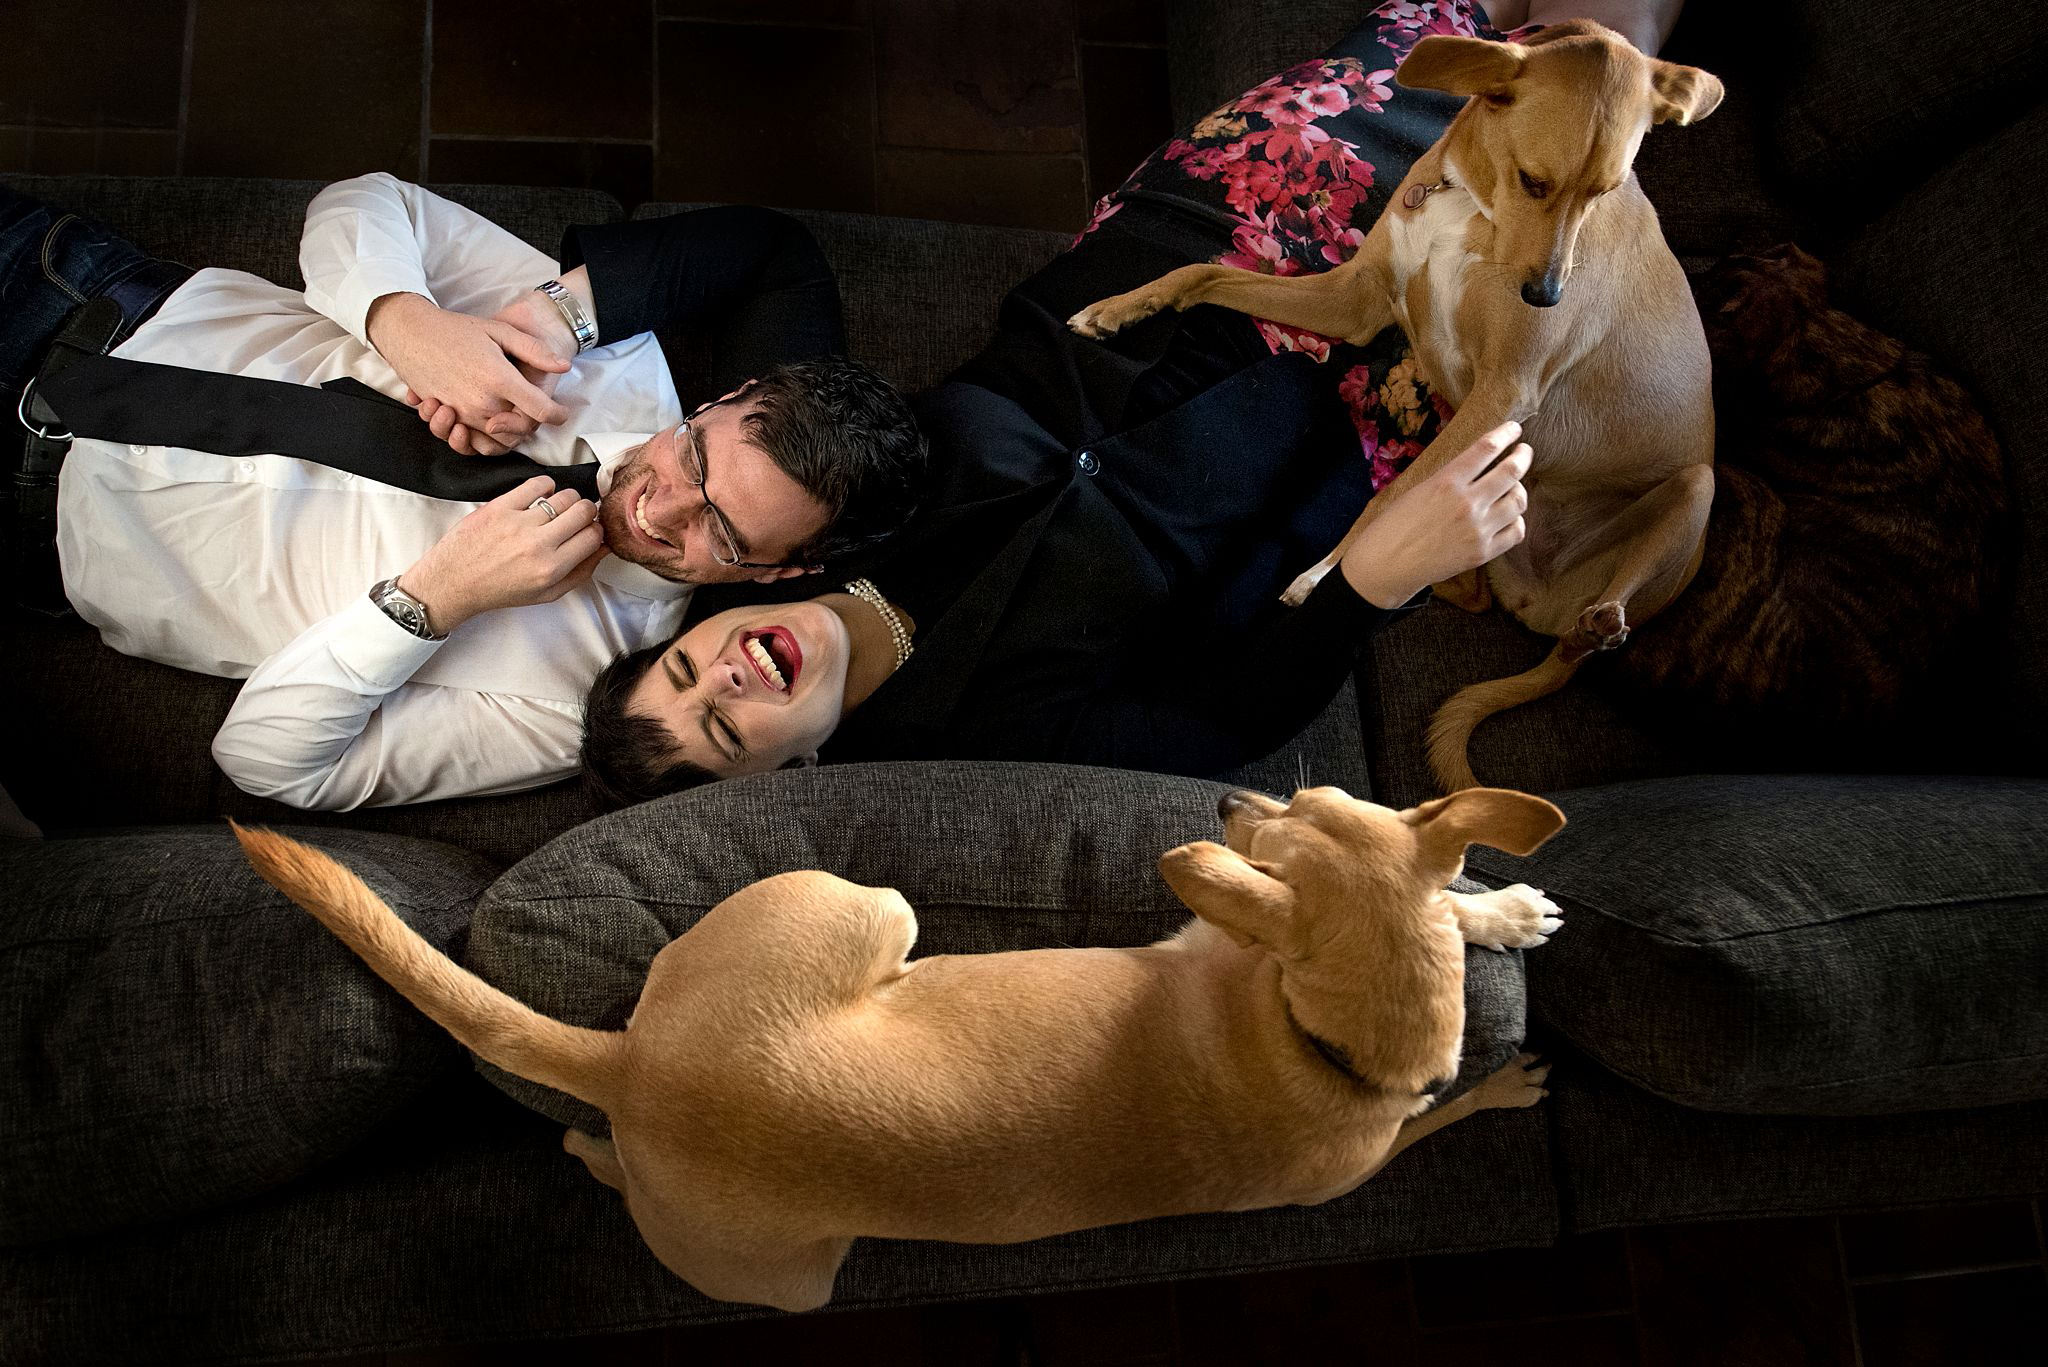 Rescue dogs and their owners